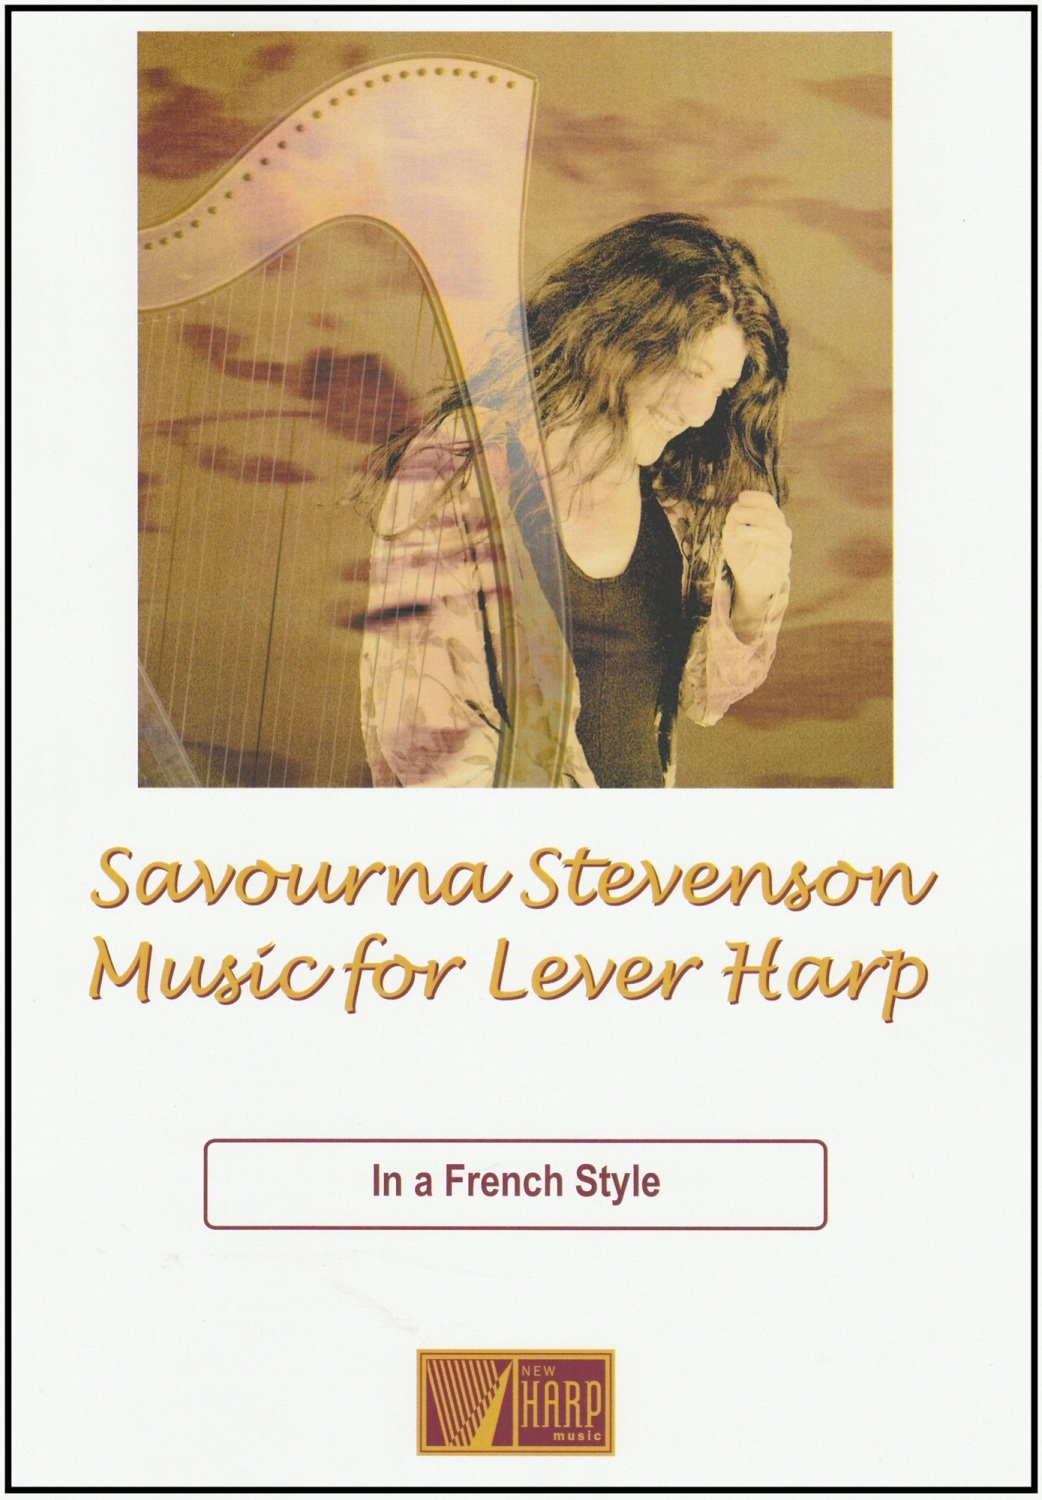 In a French Style - Savourna Stevenson